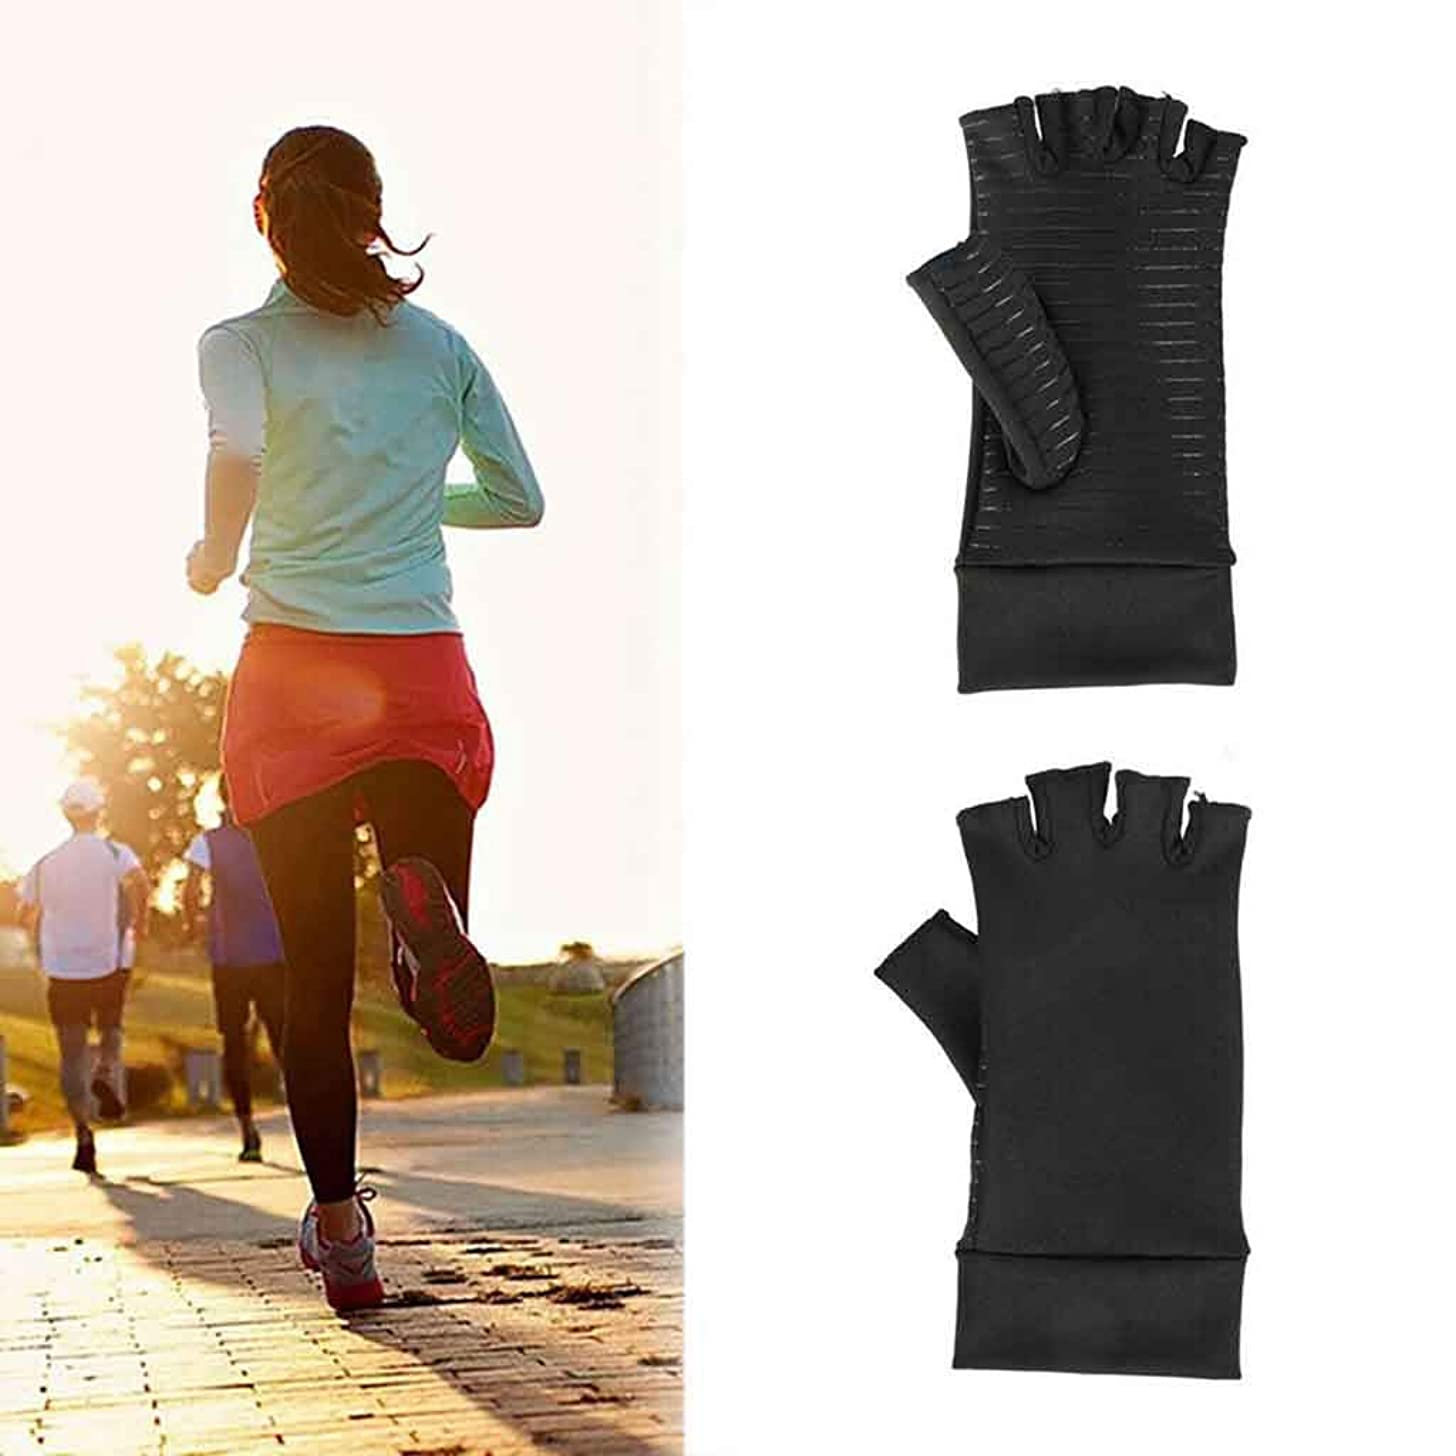 Fine Compression Arthritis Gloves,Arthritis Gloves Pain Relief Fingerless Compression Glove Speed Up Recovery & Relieve Symptoms of Arthritis